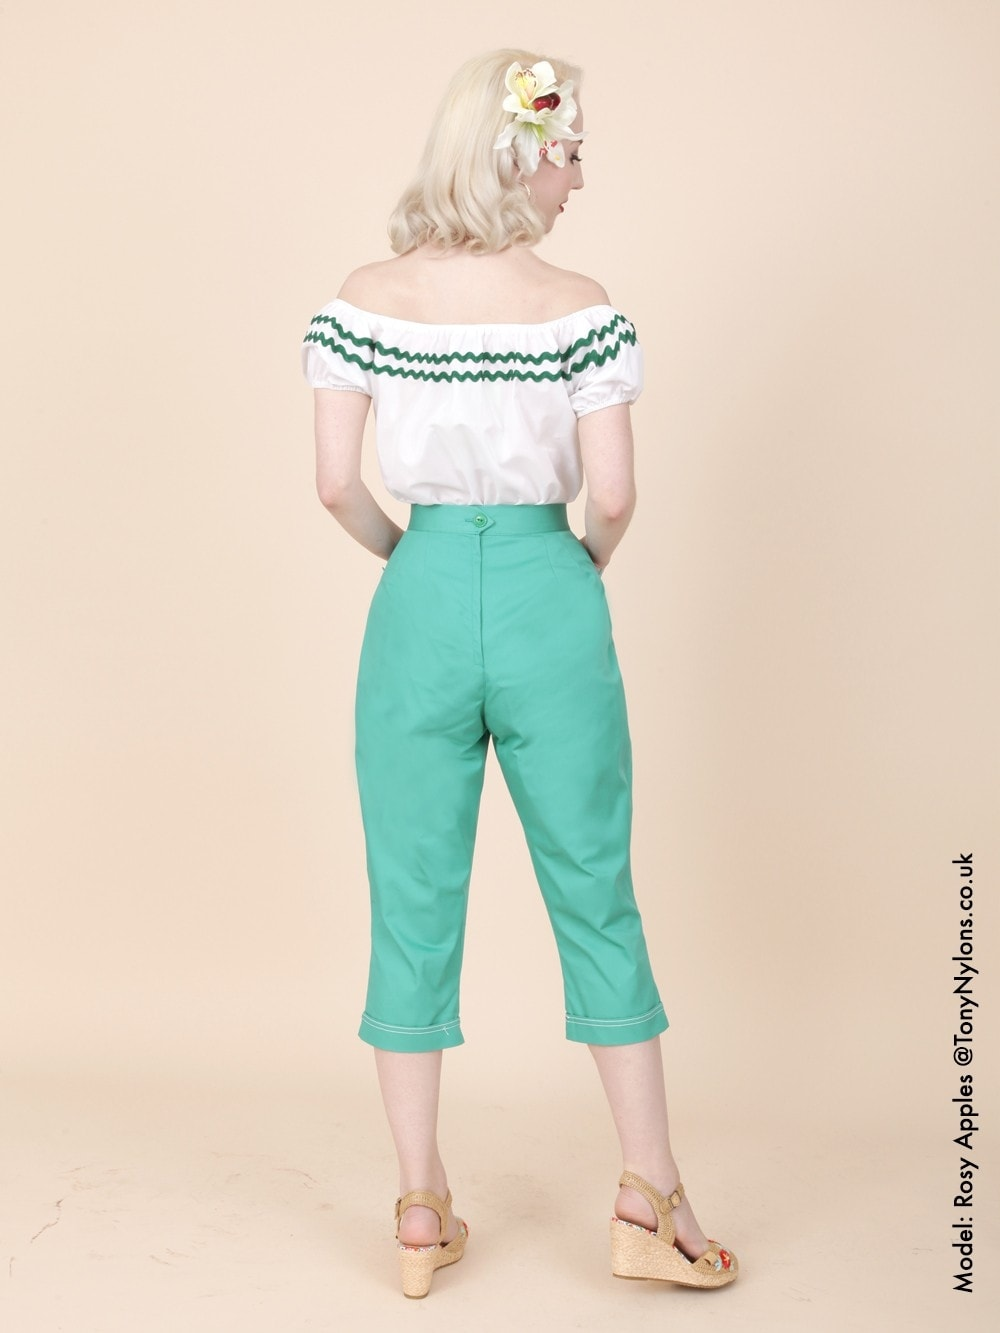 Capri Pants Teal Drill from Vivien of Holloway